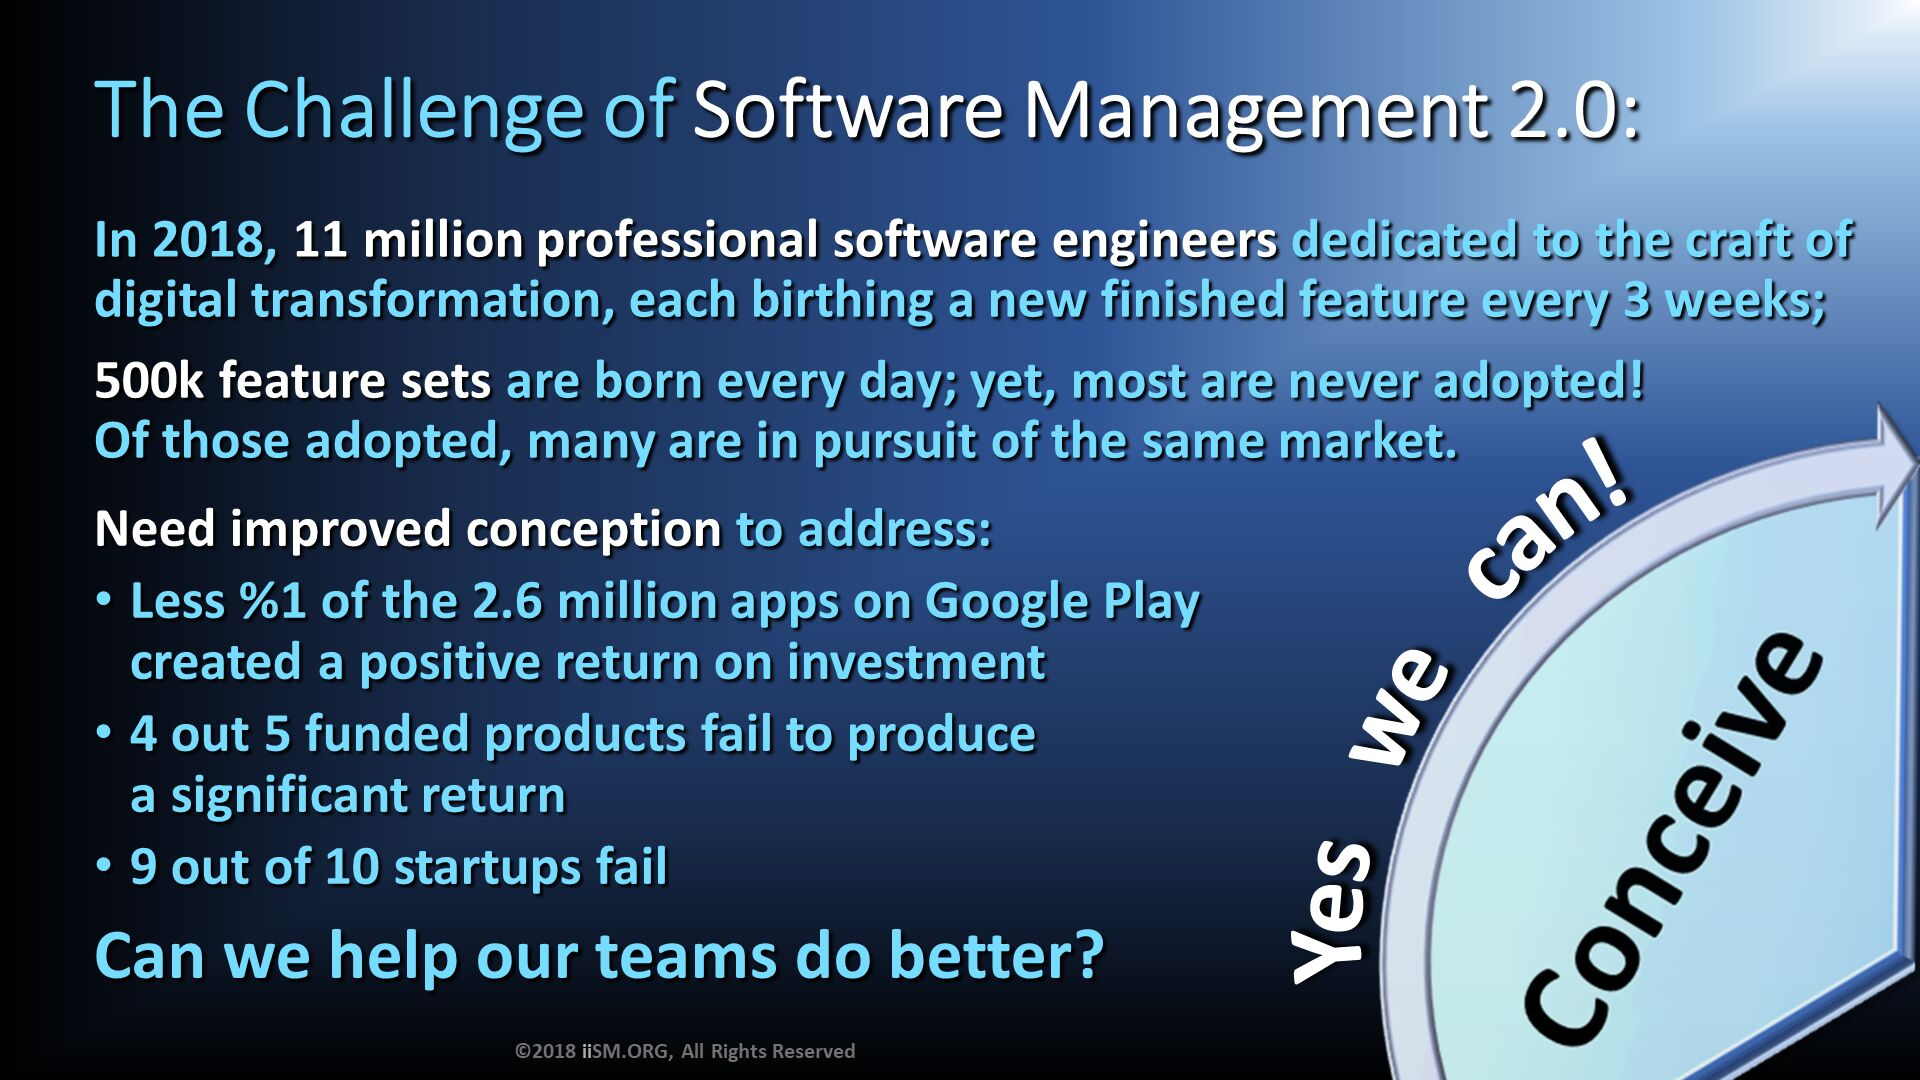 The Challenge of Software Management 2.0:. In 2018, 11 million professional software engineers dedicated to the craft of digital transformation, each birthing a new finished feature every 3 weeks; 500k feature sets are born every day; yet, most are never adopted!Of those adopted, many are in pursuit of the same market. ©2018 iiSM.ORG, All Rights Reserved. Need improved conception to address: Less %1 of the 2.6 million apps on Google Play created a positive return on investment 4 out 5 funded products fail to produce a significant return 9 out of 10 startups fail Can we help our teams do better?  . Yes   we   can!.